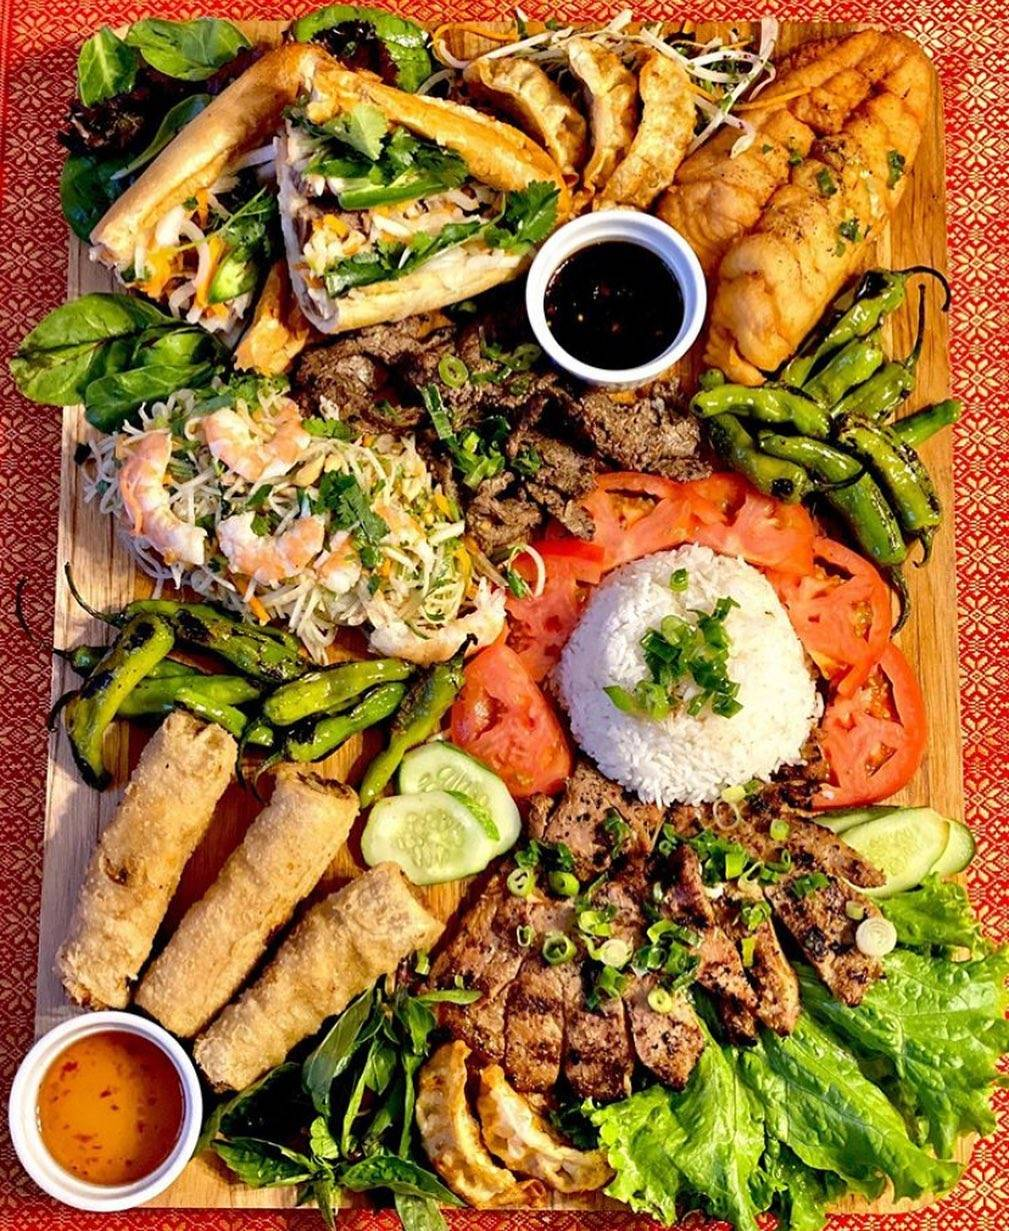 Saigon Outcast | restaurant | 44921 George Washington Blvd #155, Ashburn, VA 20147, USA | 7032586562 OR +1 703-258-6562